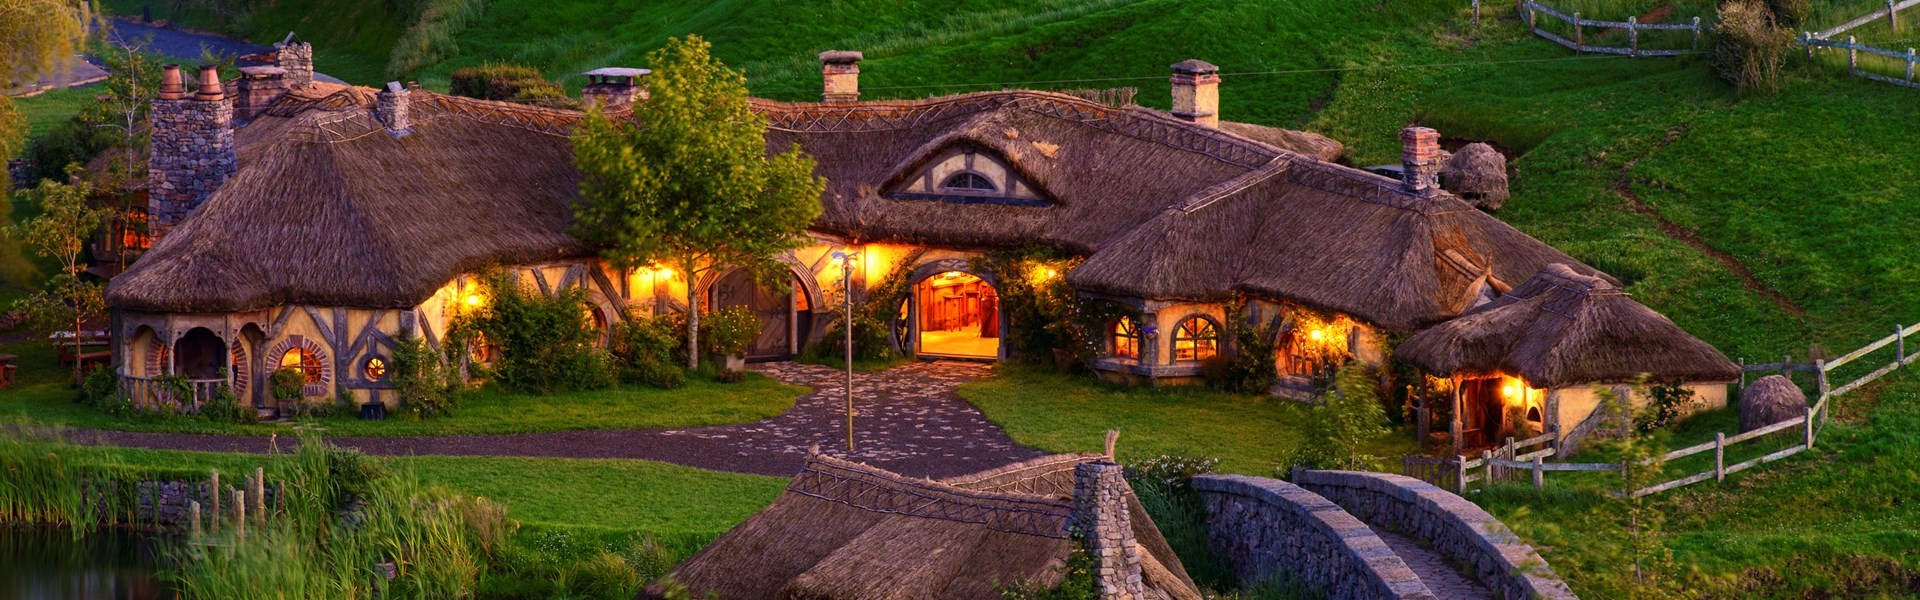 The Hobbiton Green Dragon Inn